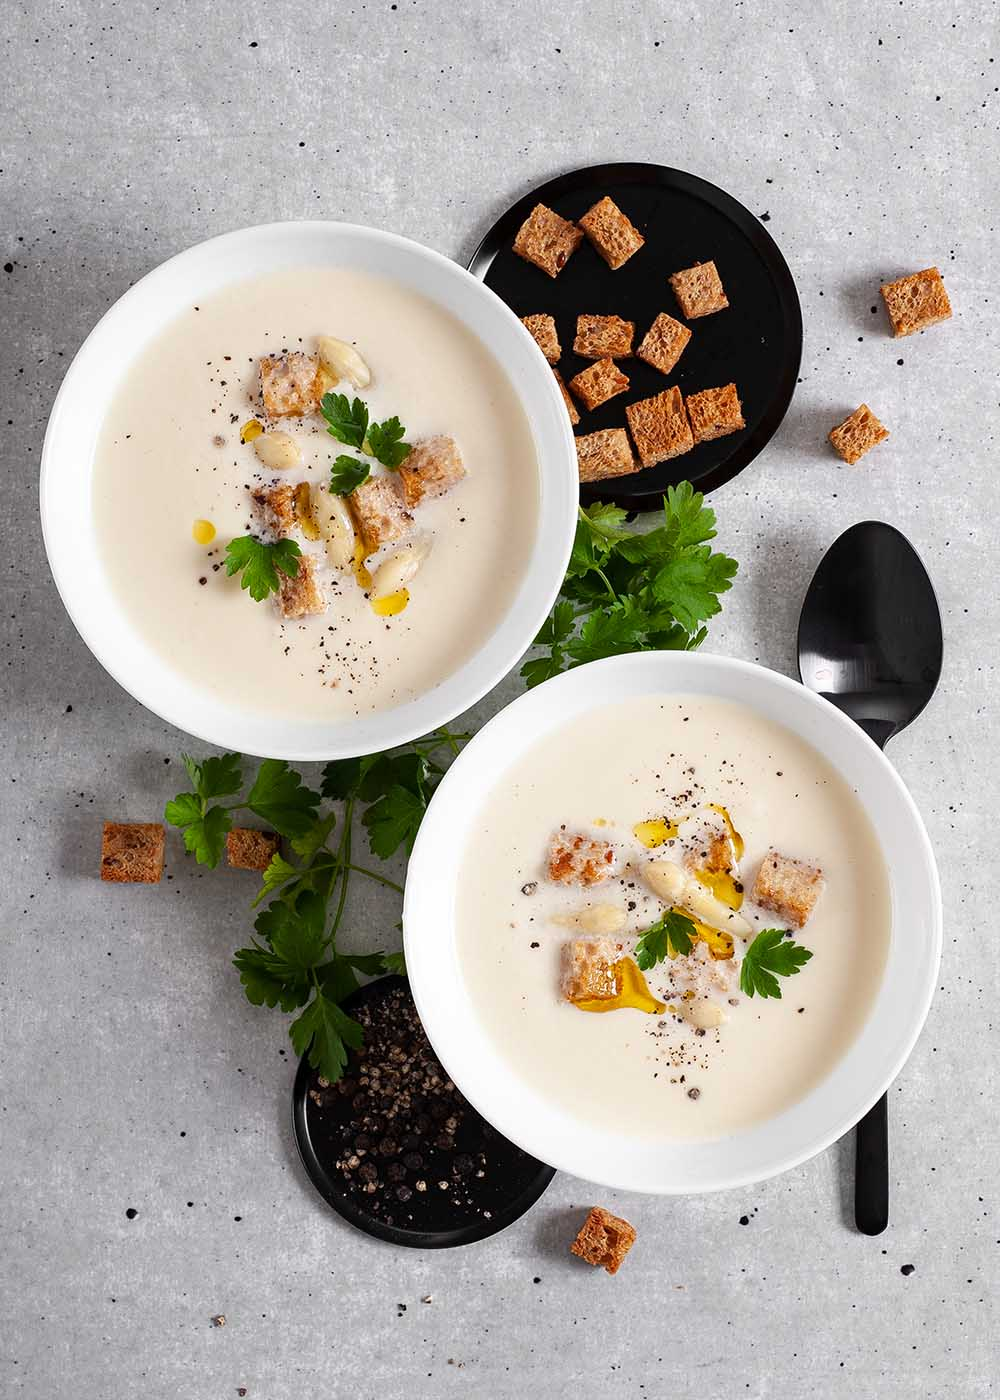 Spargelsuppe mit Croutons 2